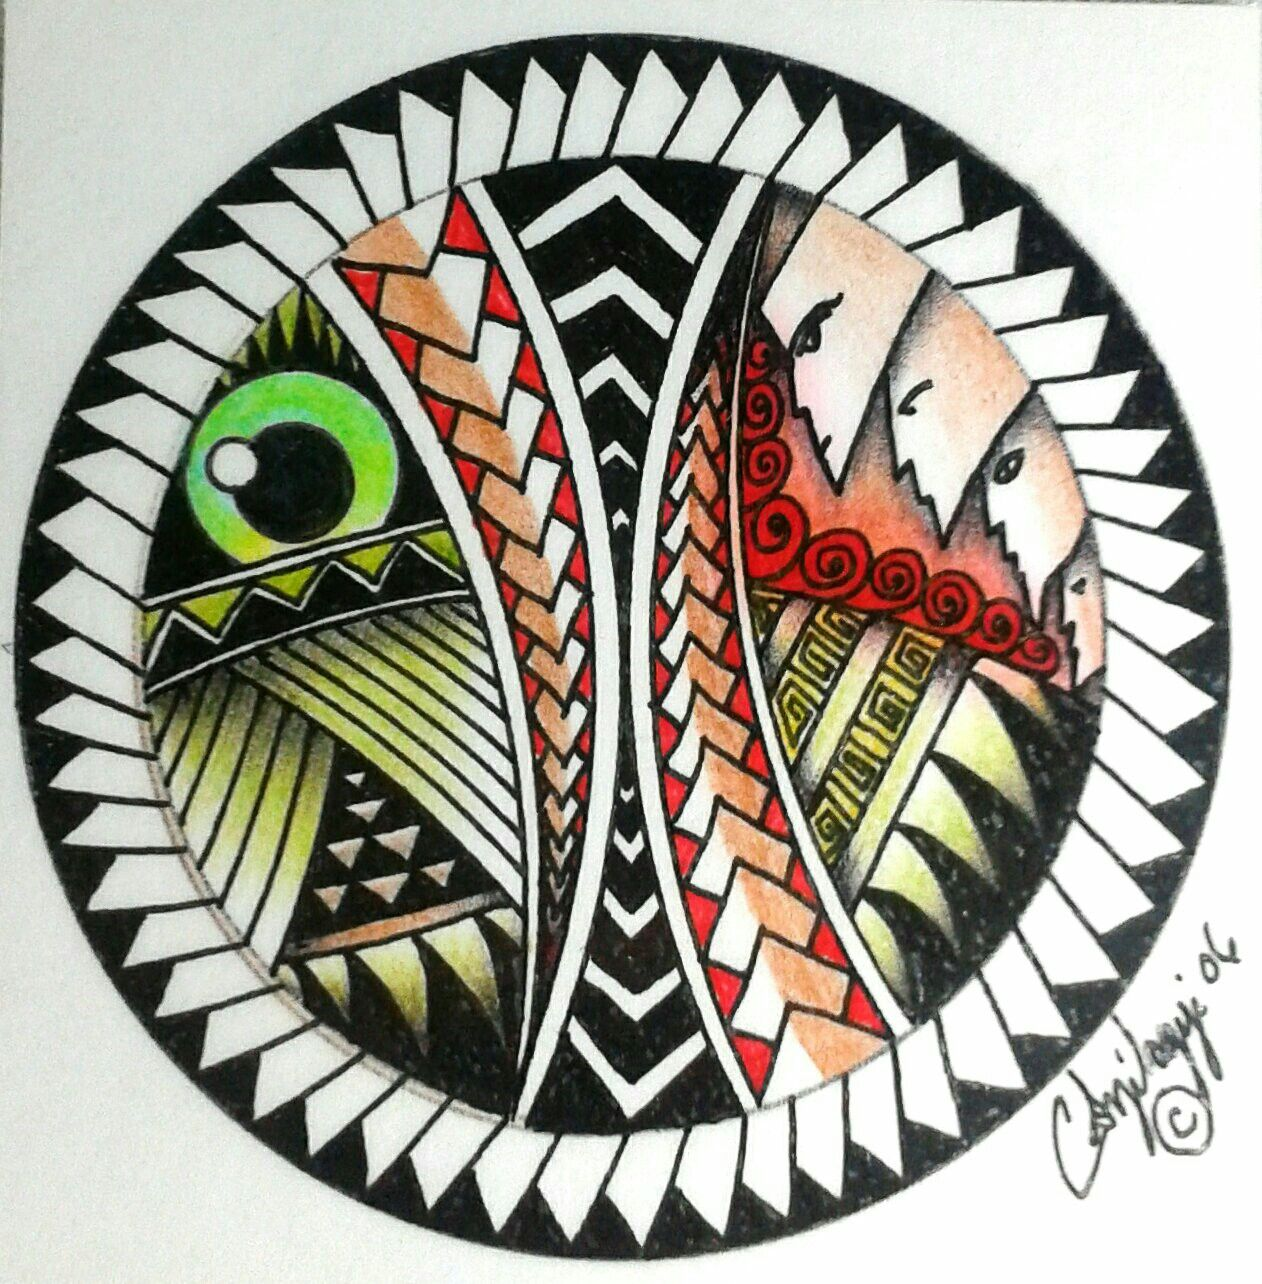 Tribal Tattoo With Color: Neo Tribal Tattoo Design, Color Pencil And Ink Circle